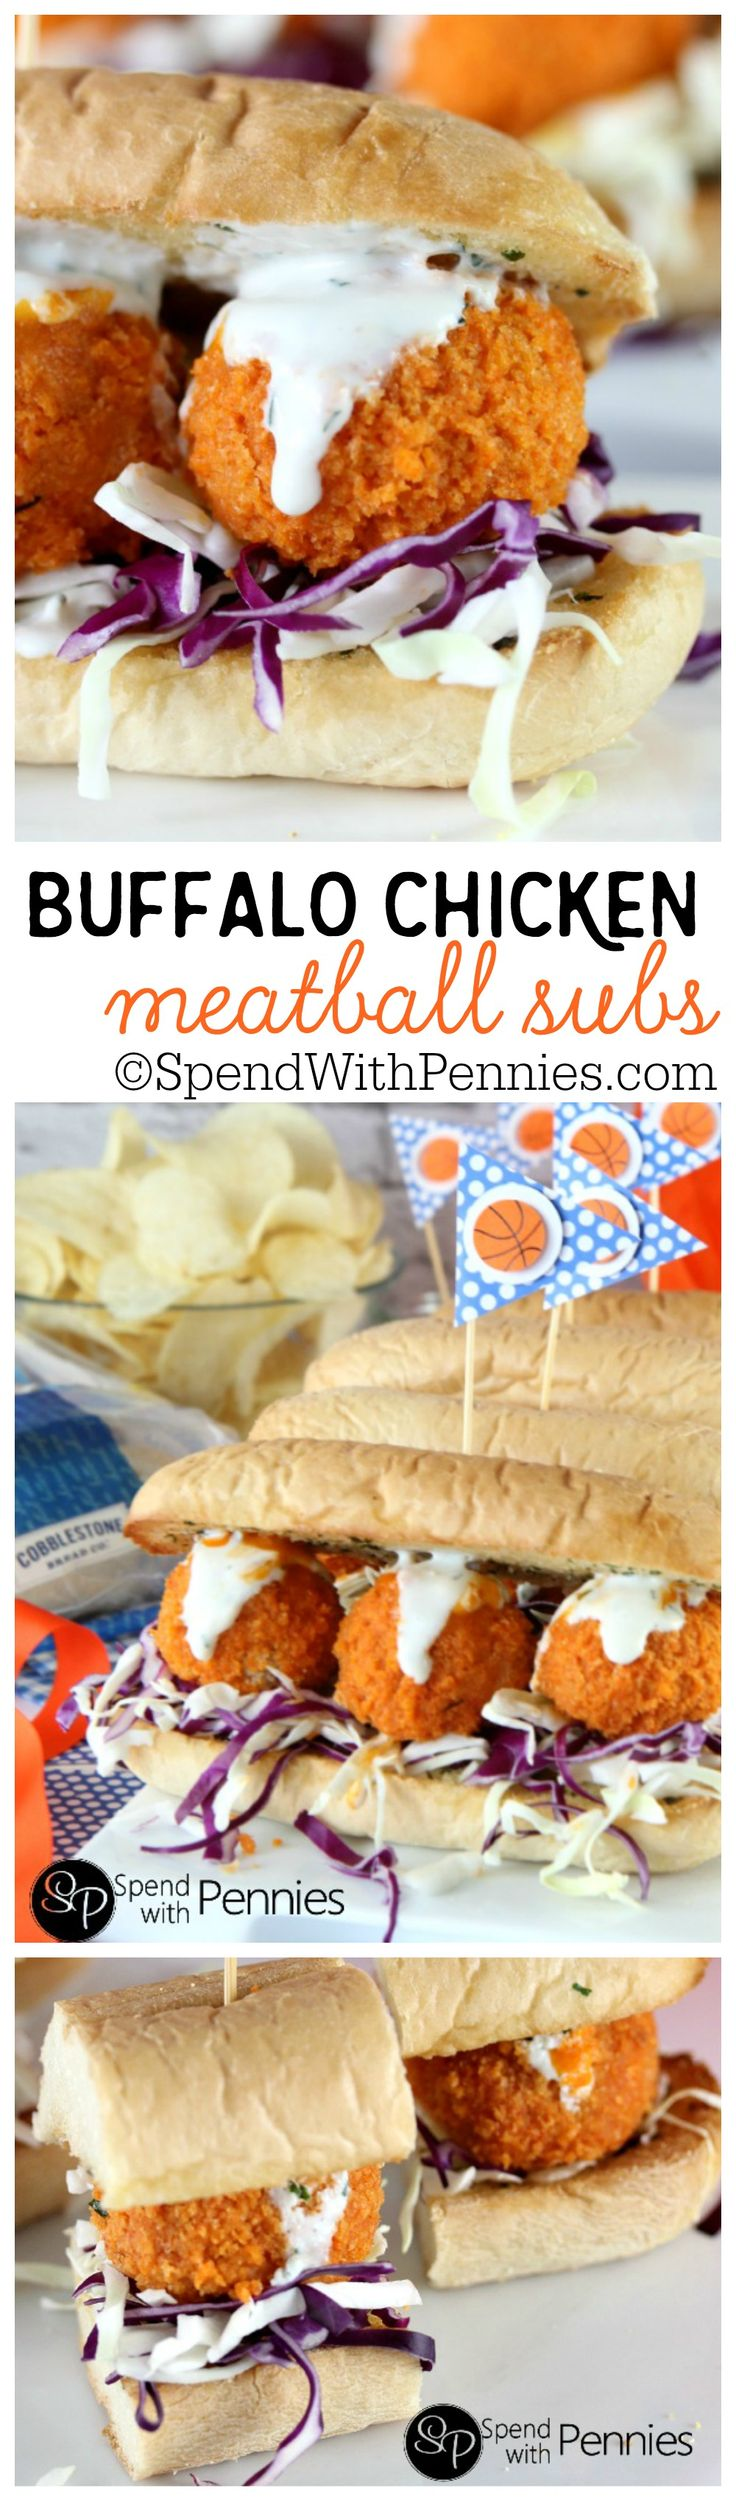 Buffalo Chicken Meatball Subs!  Like Buffalo Wings? You'll LOVE these!! Tender chicken meatballs baked crispy in the oven, rolled in buffalo sauce & topped with dip!  These can be served as buffalo chicken sandwiches or sliders! Bring on March Madness! @CBCBreads #ShareaSandwich #MarchMadness